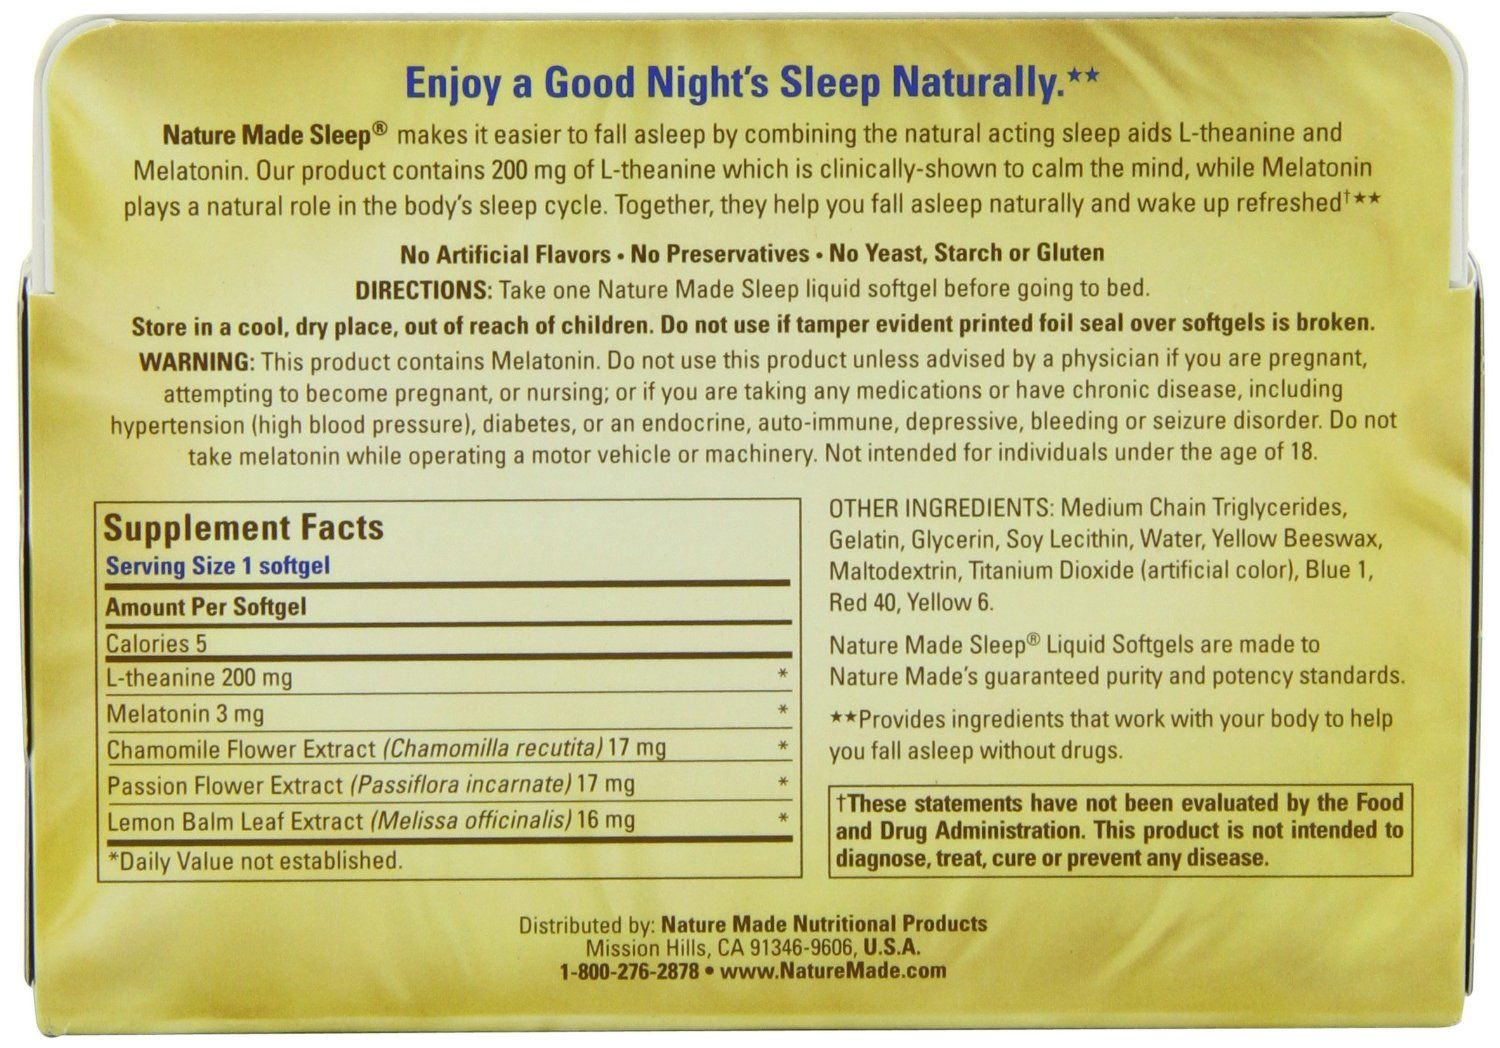 Nature Made Sleep - All Natural Sleep Aid Drug-Free (NMSA) 02